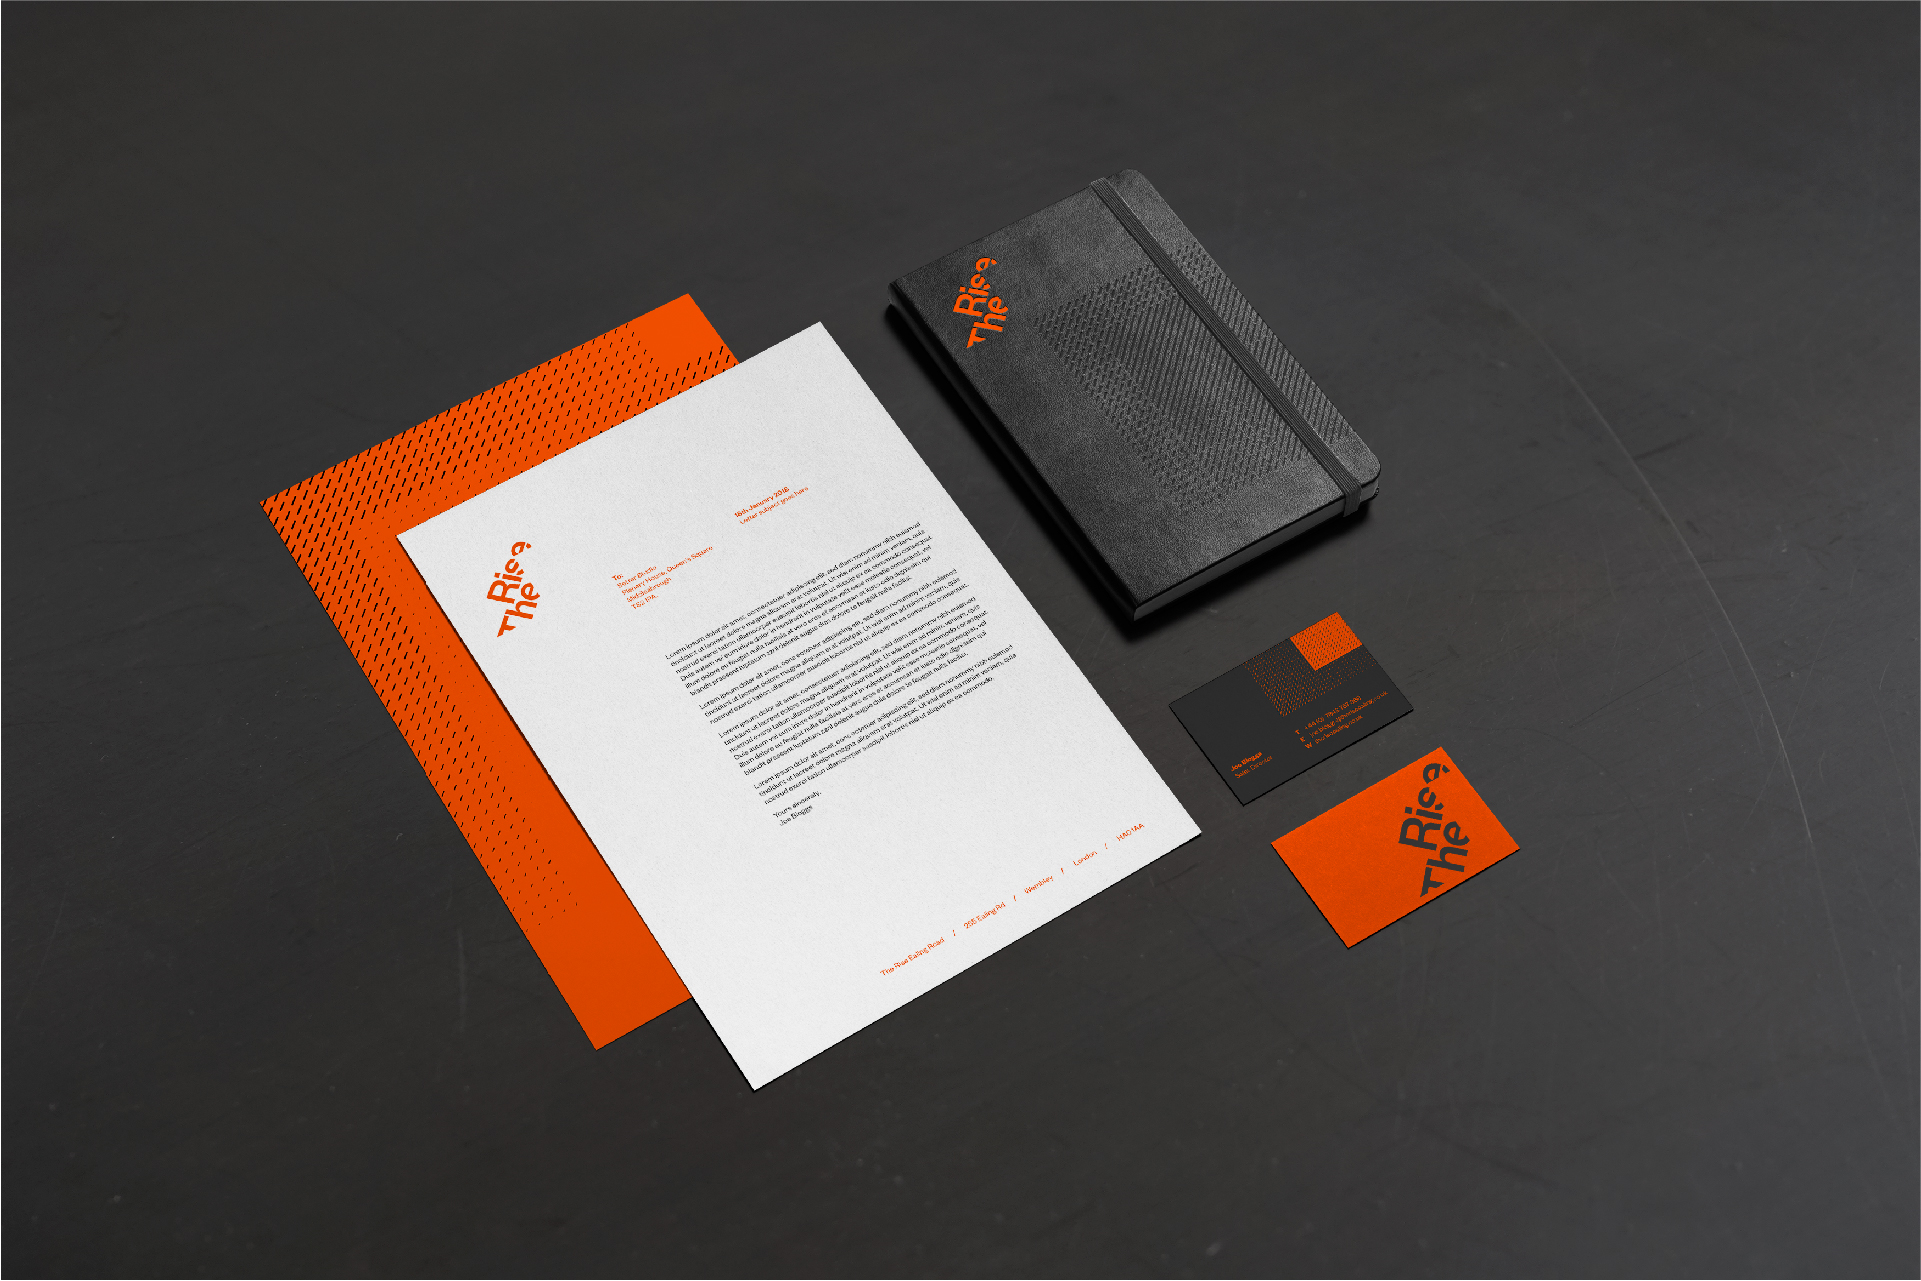 The Rise - BetterBrandBuilder™ DELIVER - Stationary Design and Production